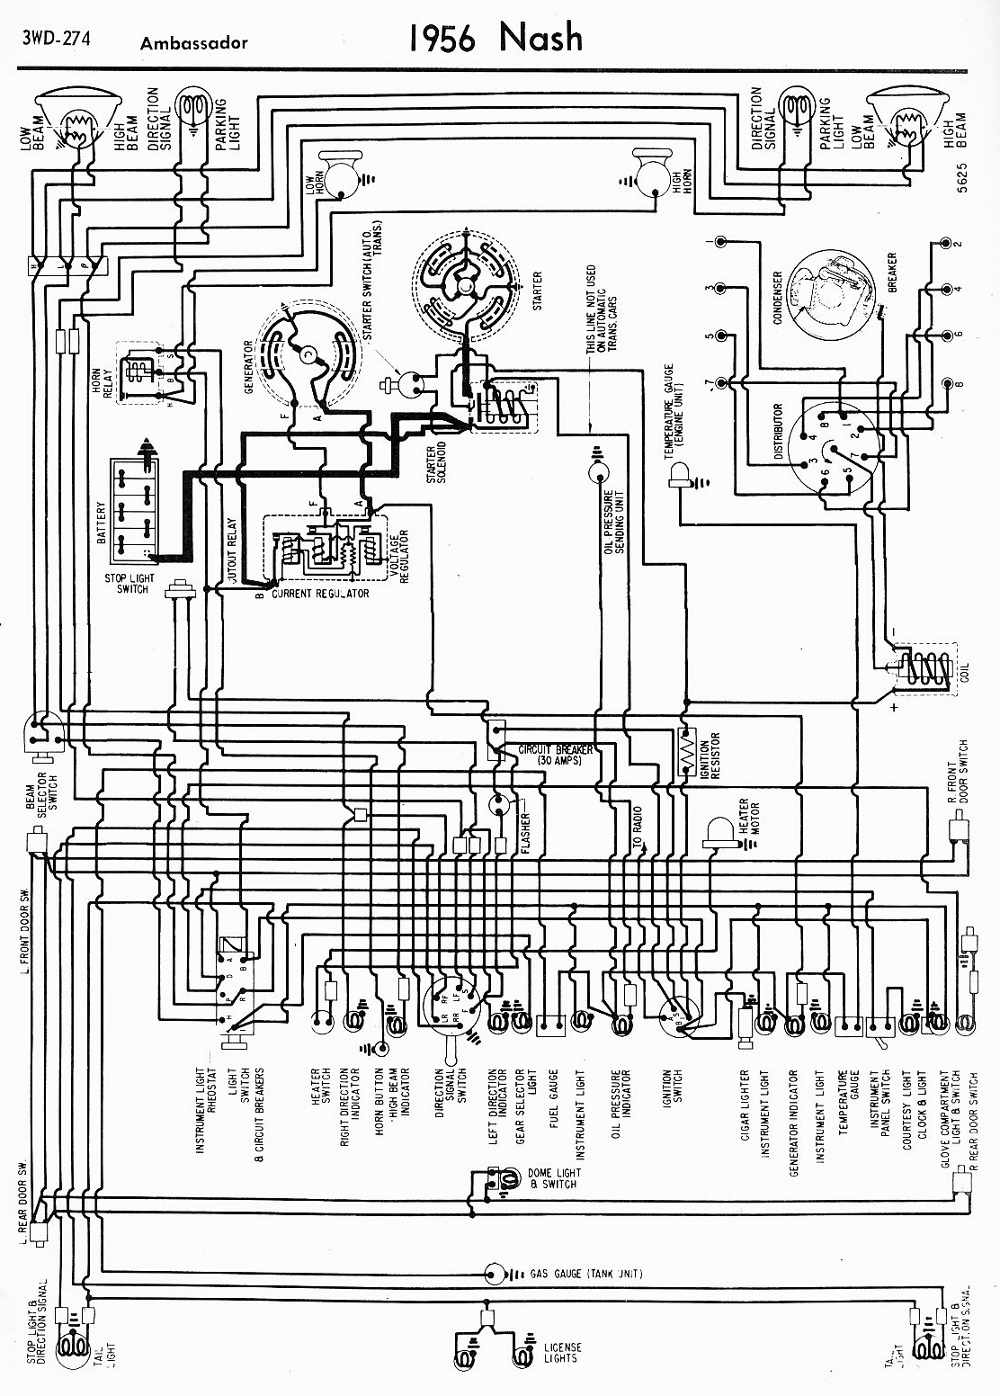 alumacraft wiring diagrams alumacraft image wiring monterey boat wiring diagram monterey wiring diagrams on alumacraft wiring diagrams